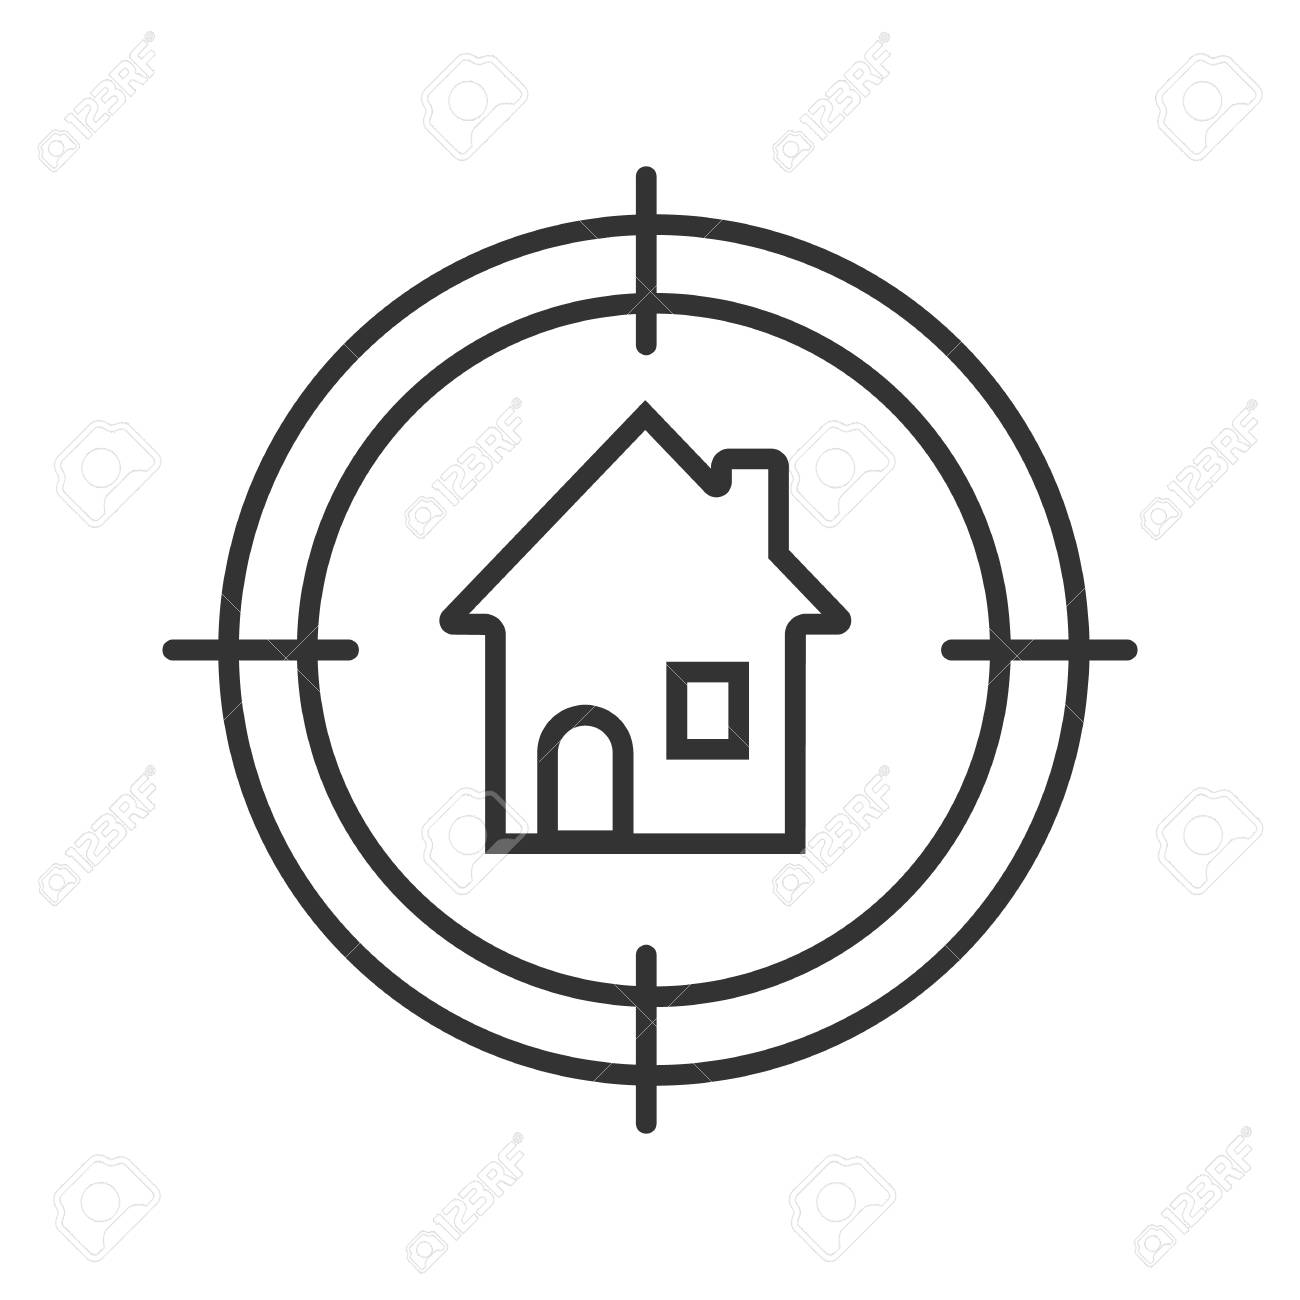 House Searching Linear Icon. Home Finder Thin Line Illustration. Contour  Symbol. House Hunt